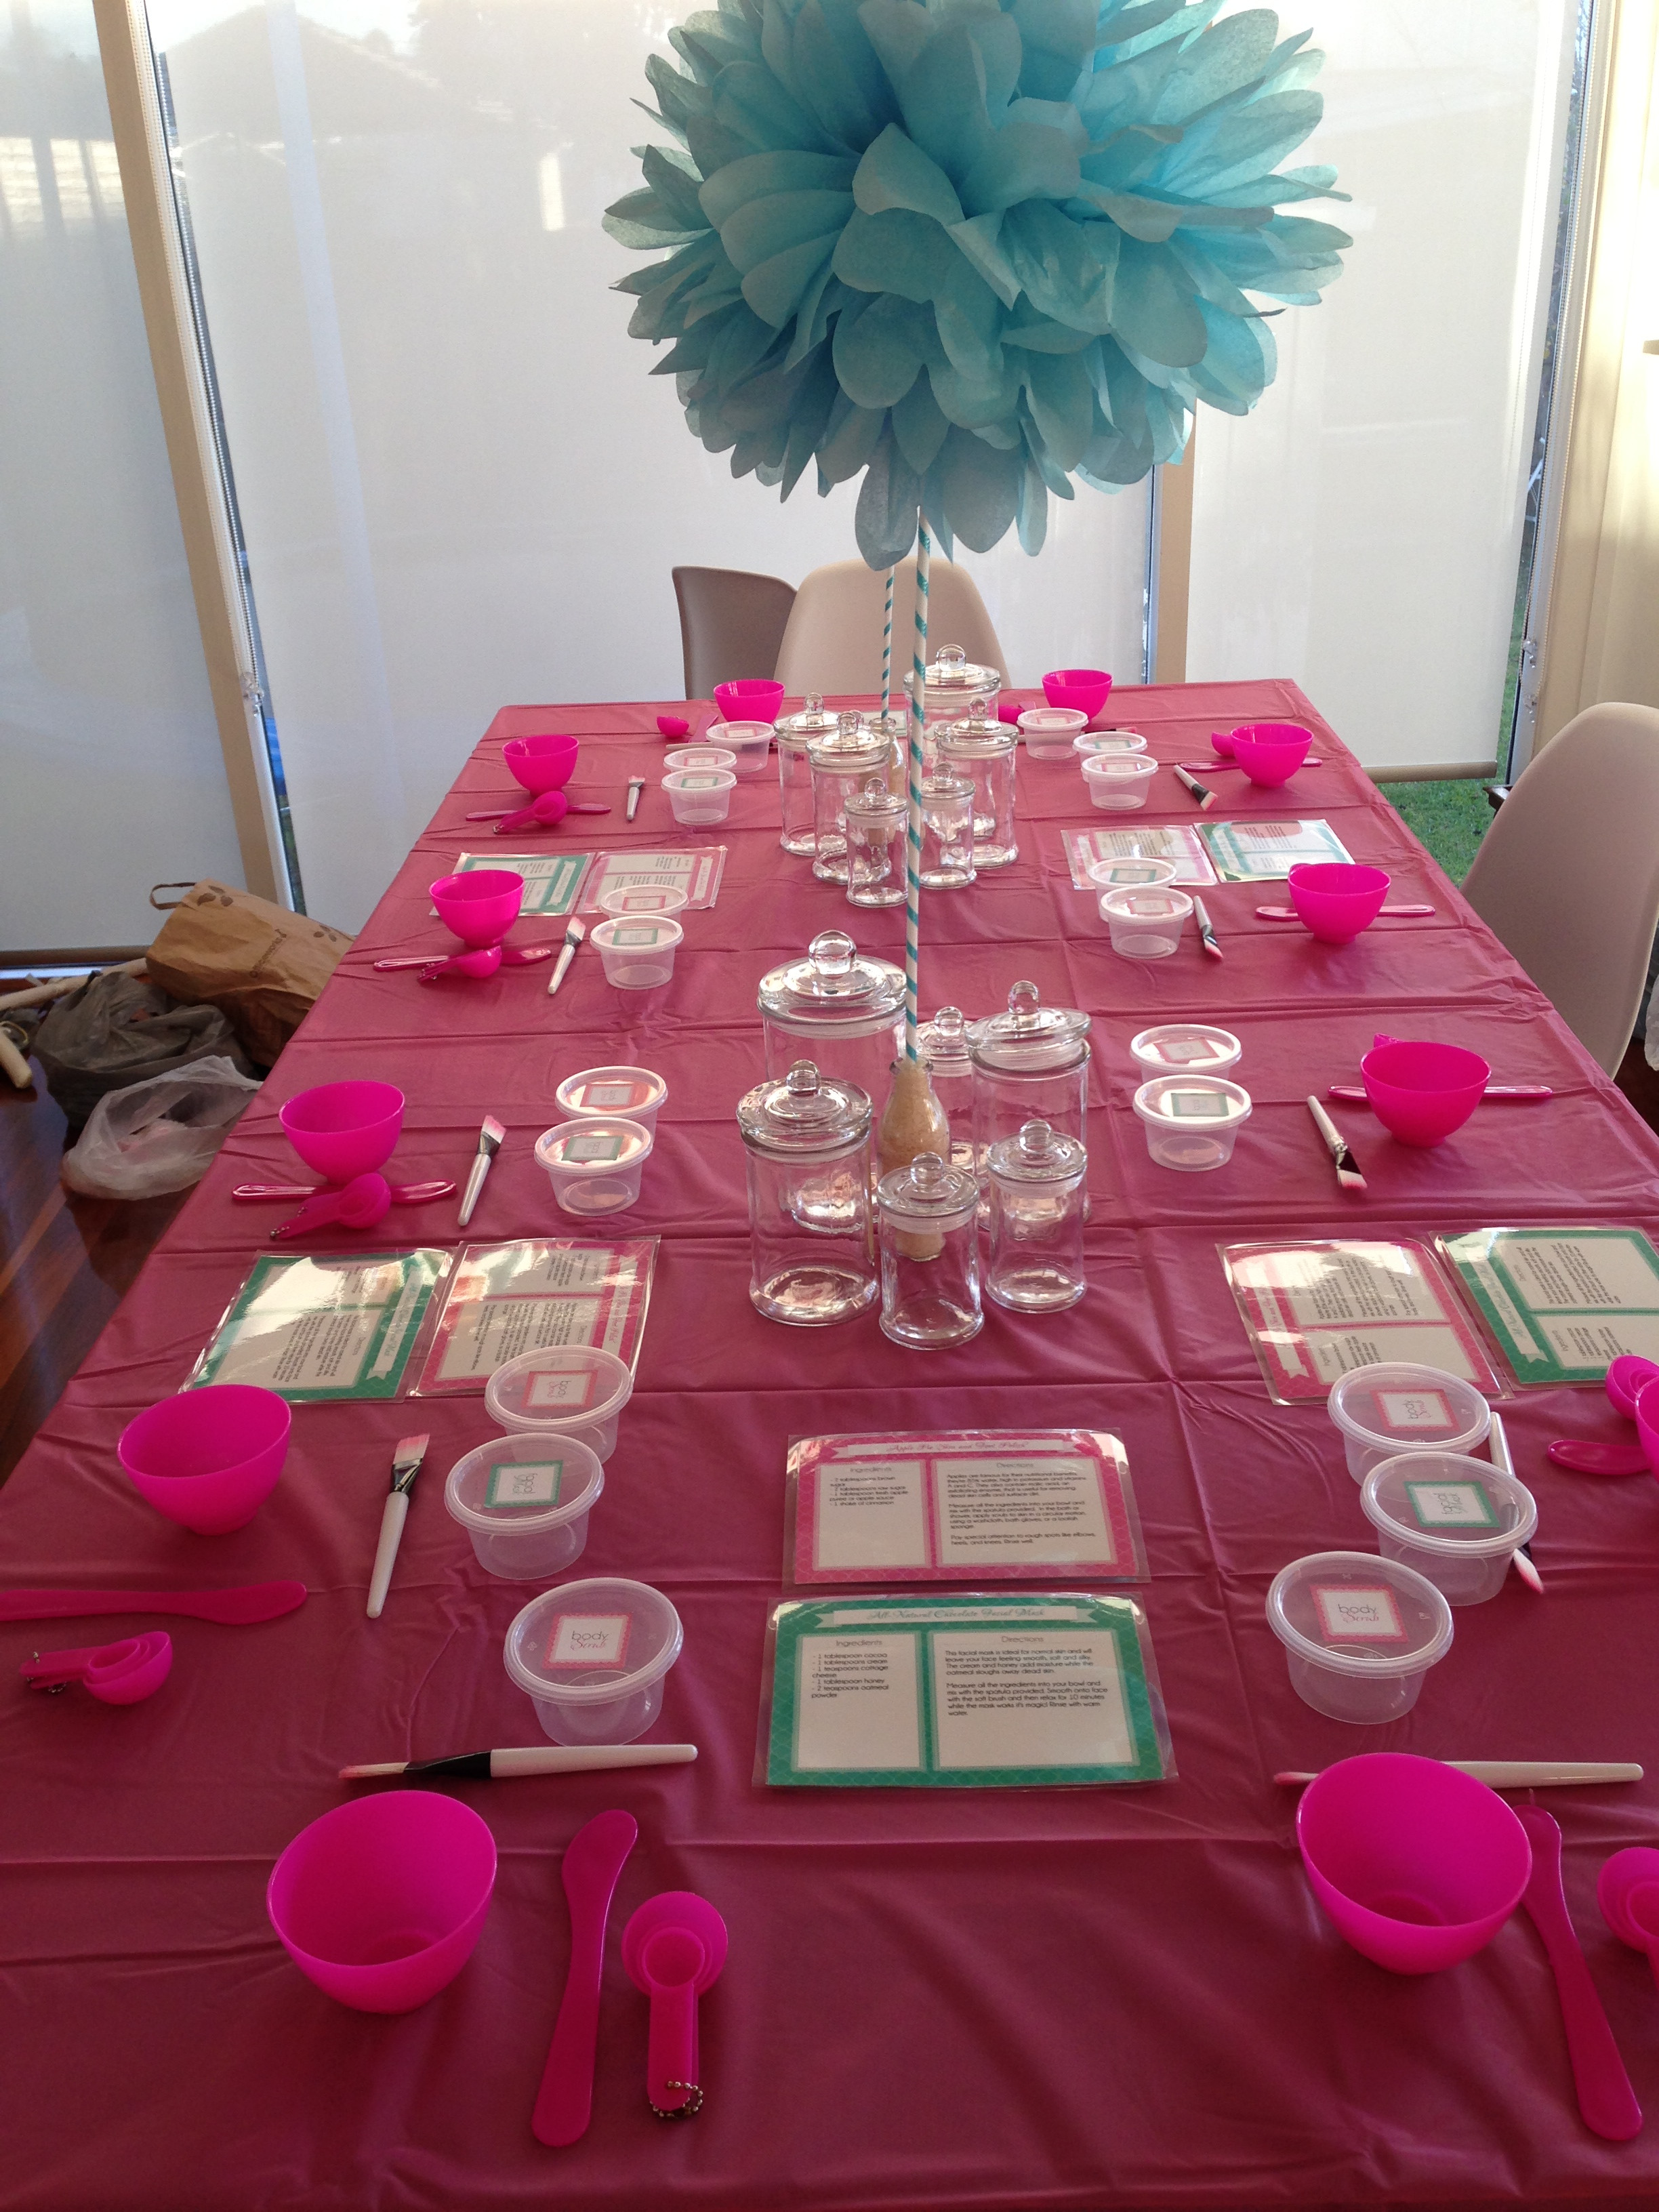 Best ideas about The Birthday Party . Save or Pin A Daily Dose of Millie Now.